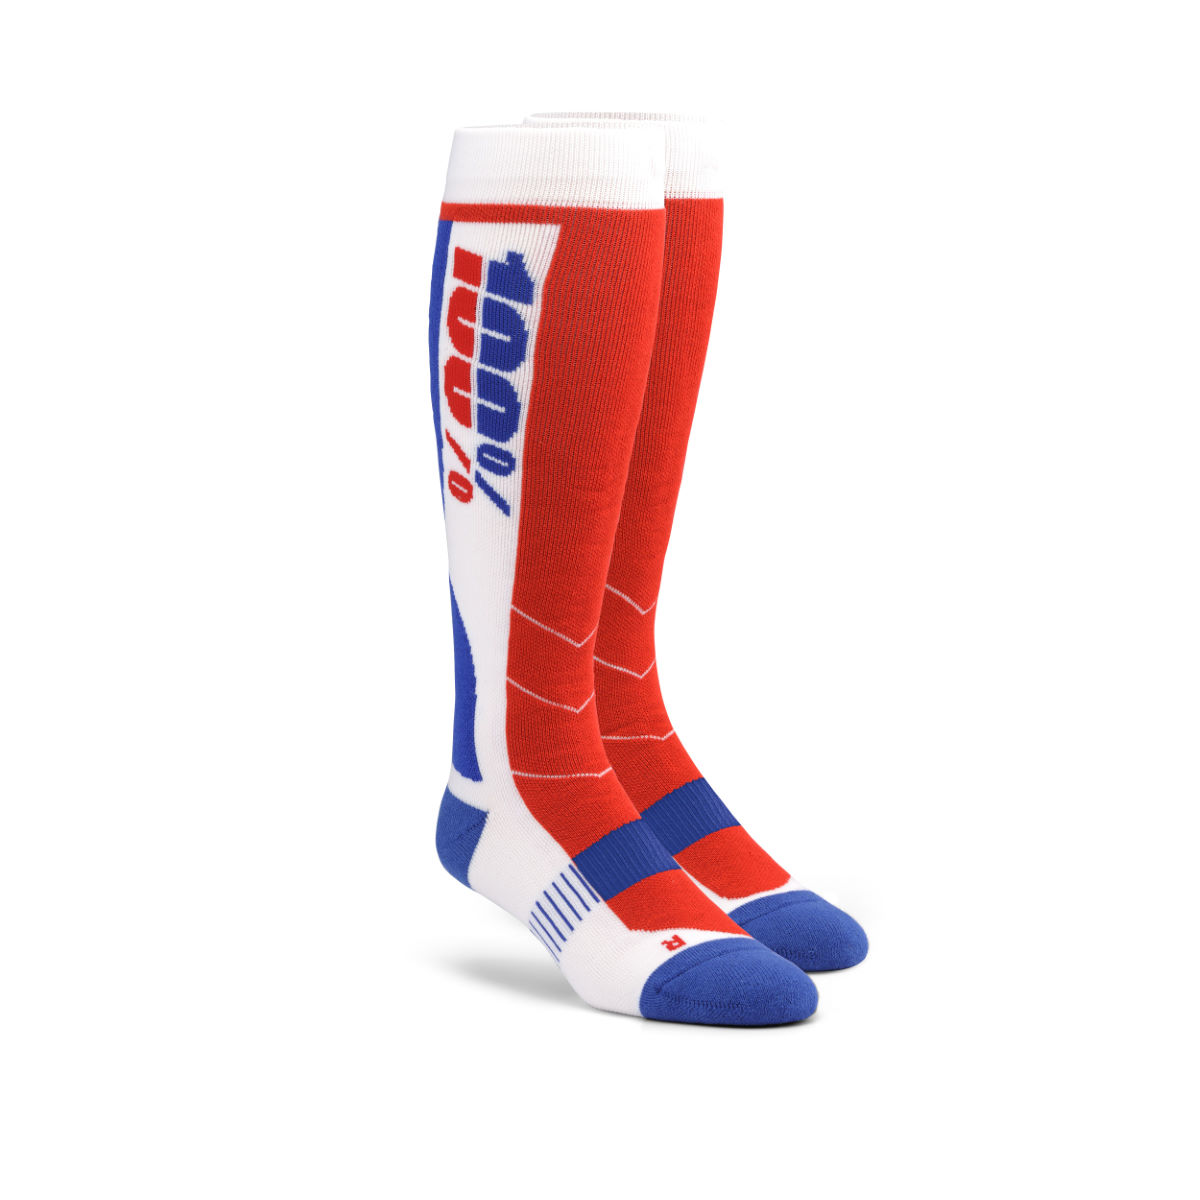 100% Hi-Side Performance Moto Socks - Calcetines de ciclismo